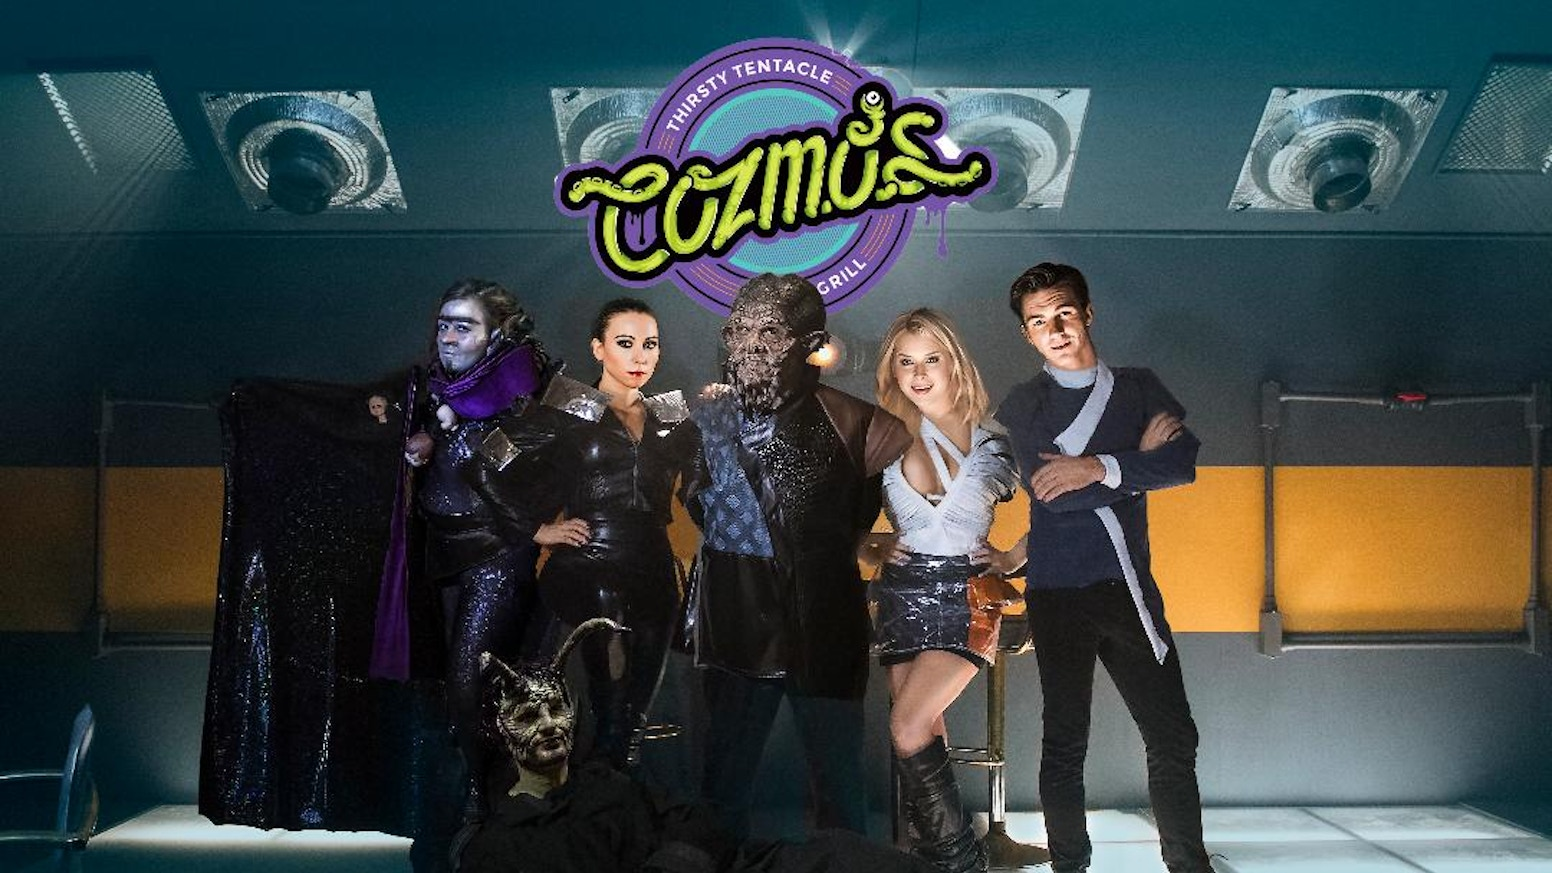 """Cozmo's"" is like ""Cheers"" in space: smart, funny, & packed with tons of science fiction legends like Ethan Phillips & Robert Picardo!"